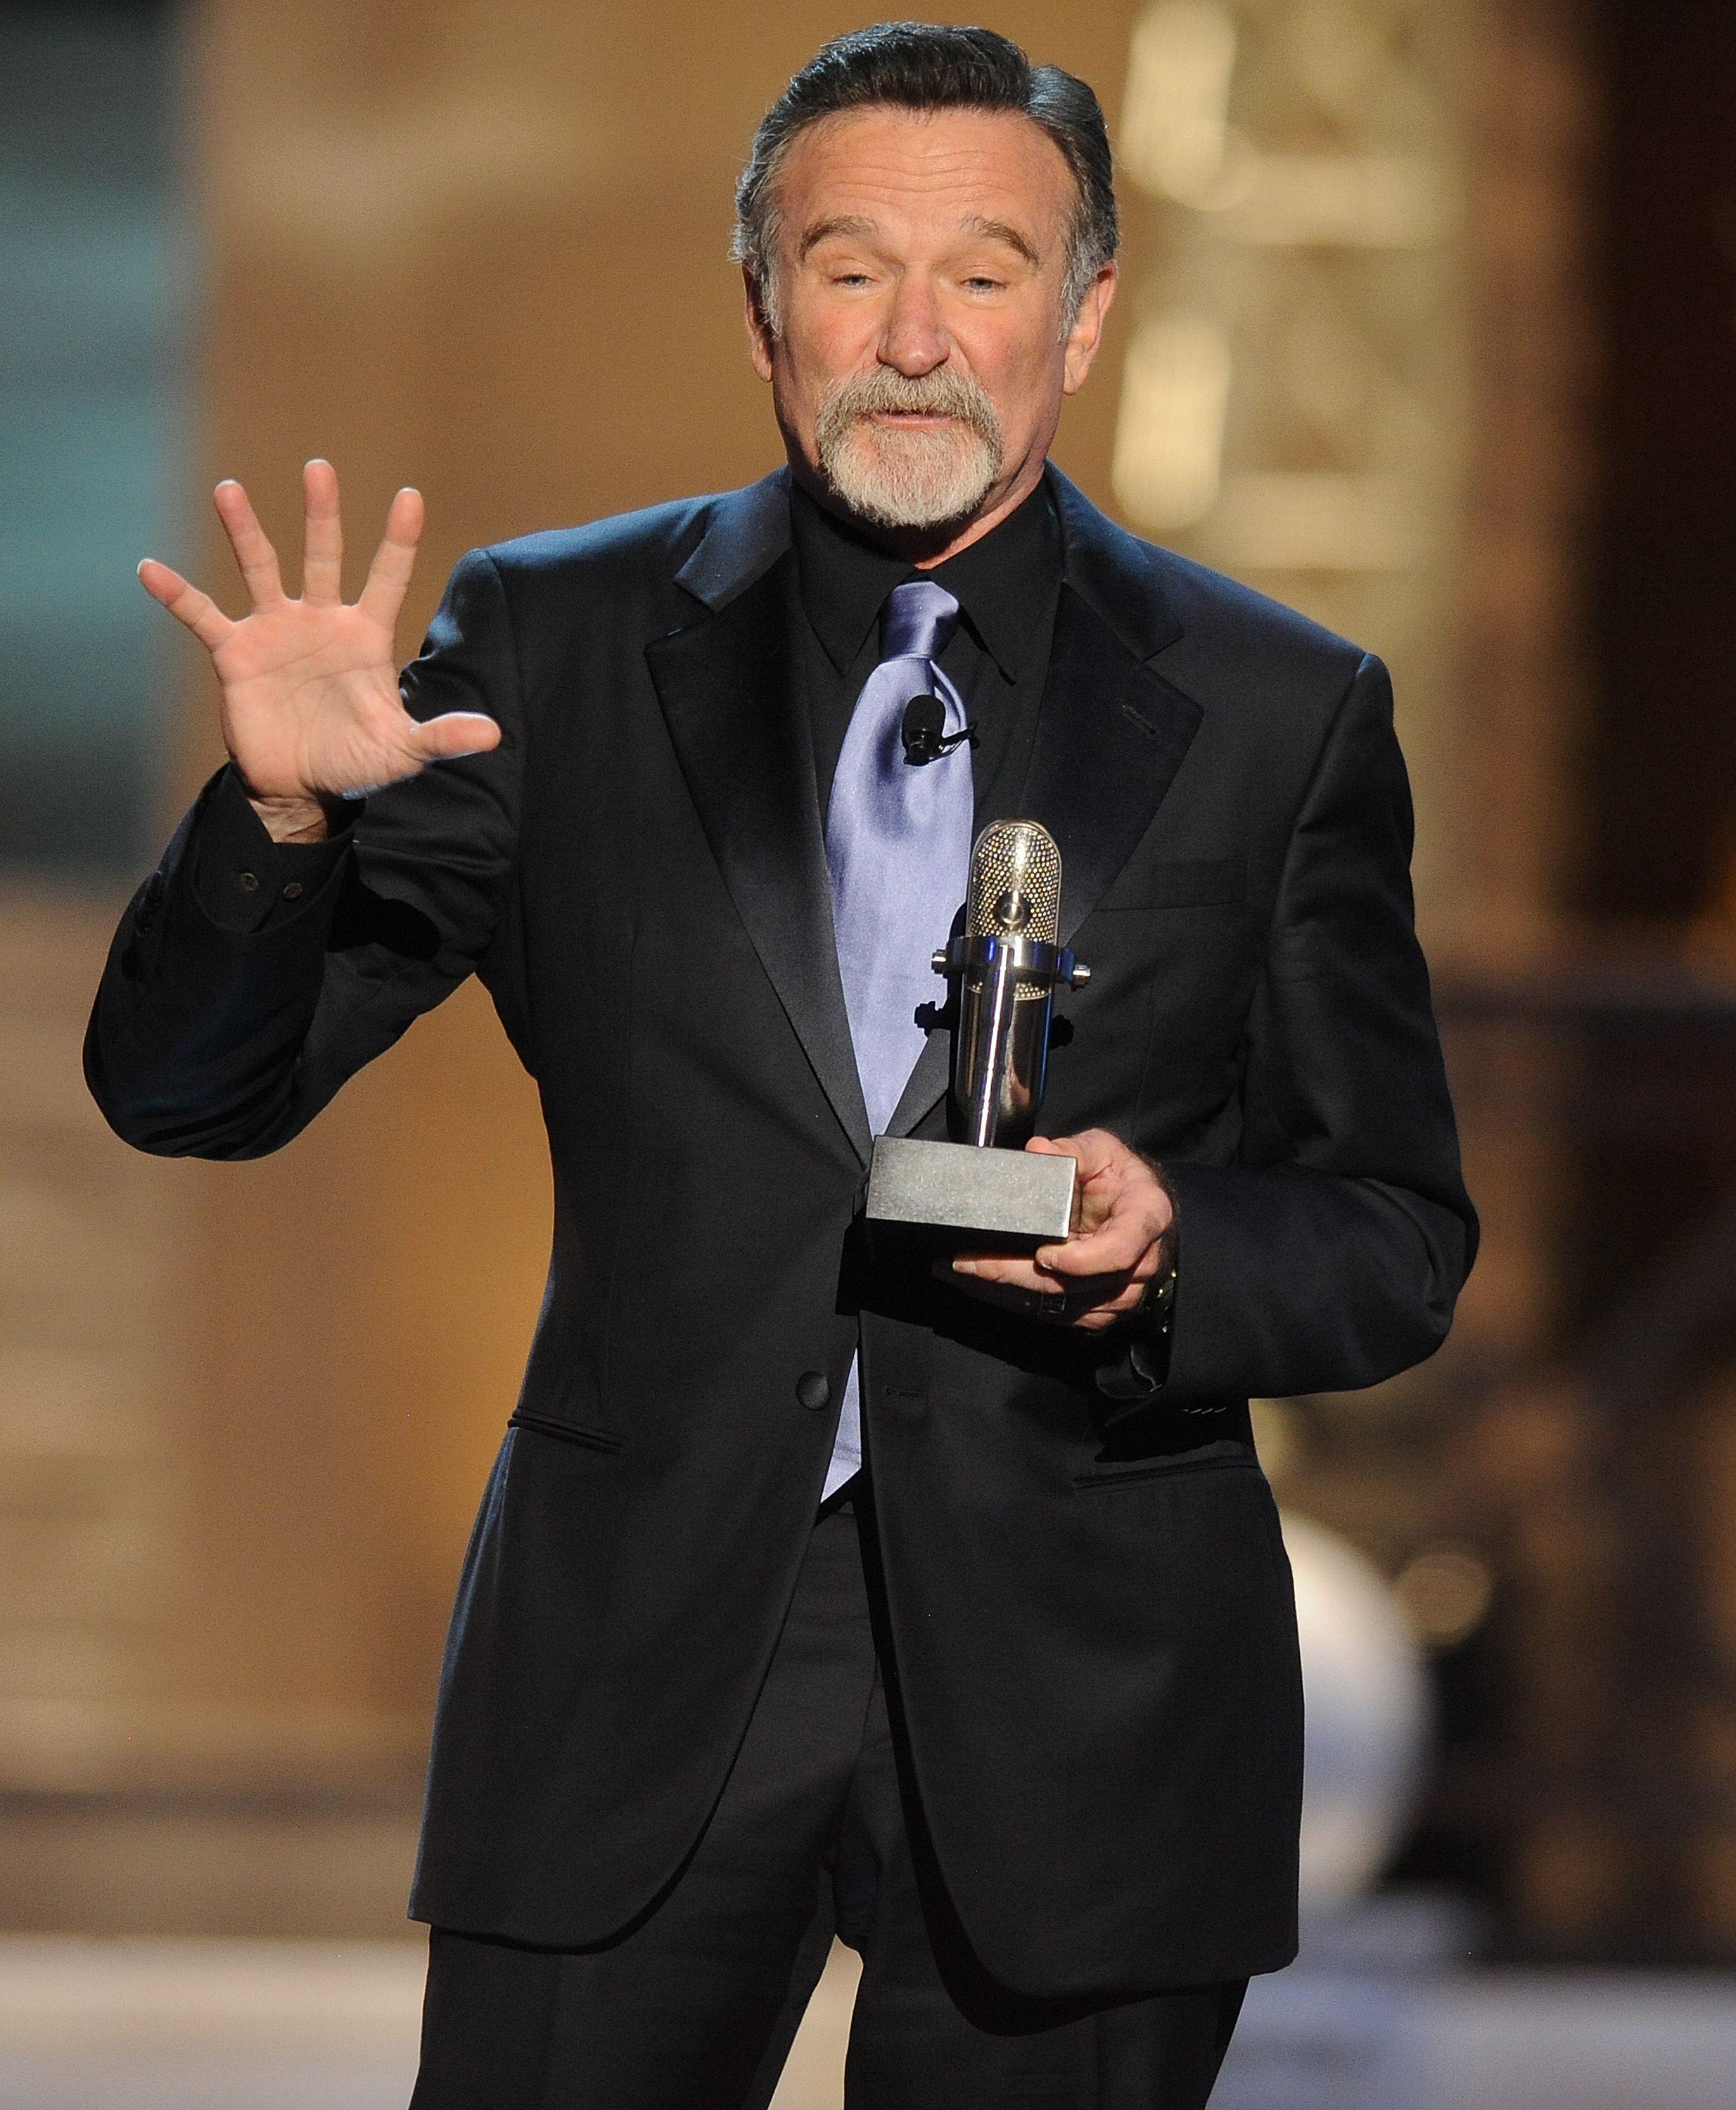 Robin Williams found dead at home Suicide | #8 Free HD Wallpapers ...